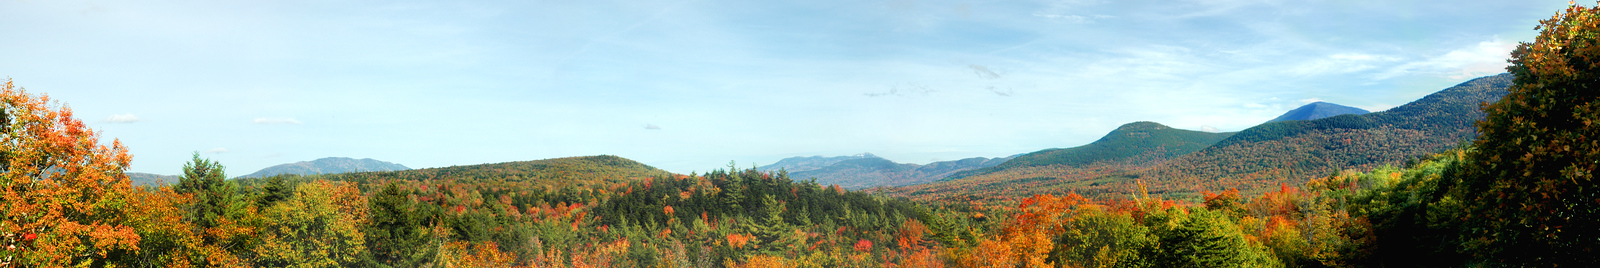 Kancamagus Highway - Scenic Rest Area<br /> a splash of Autumn colors